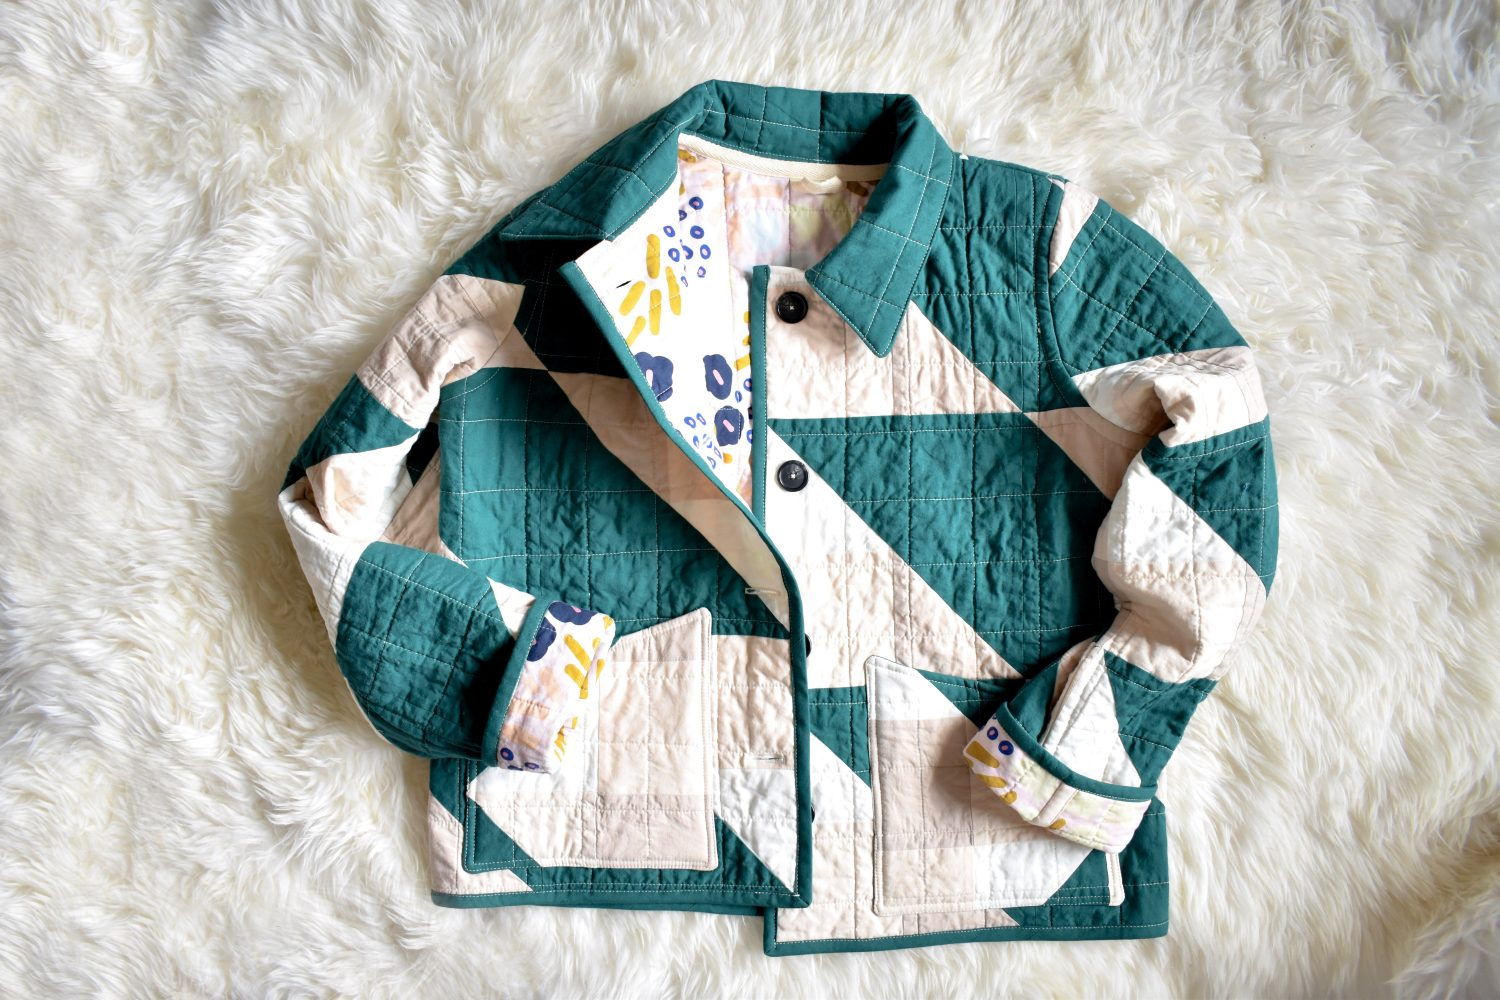 A fun quilt coat made with the Cirrus quilt pattern